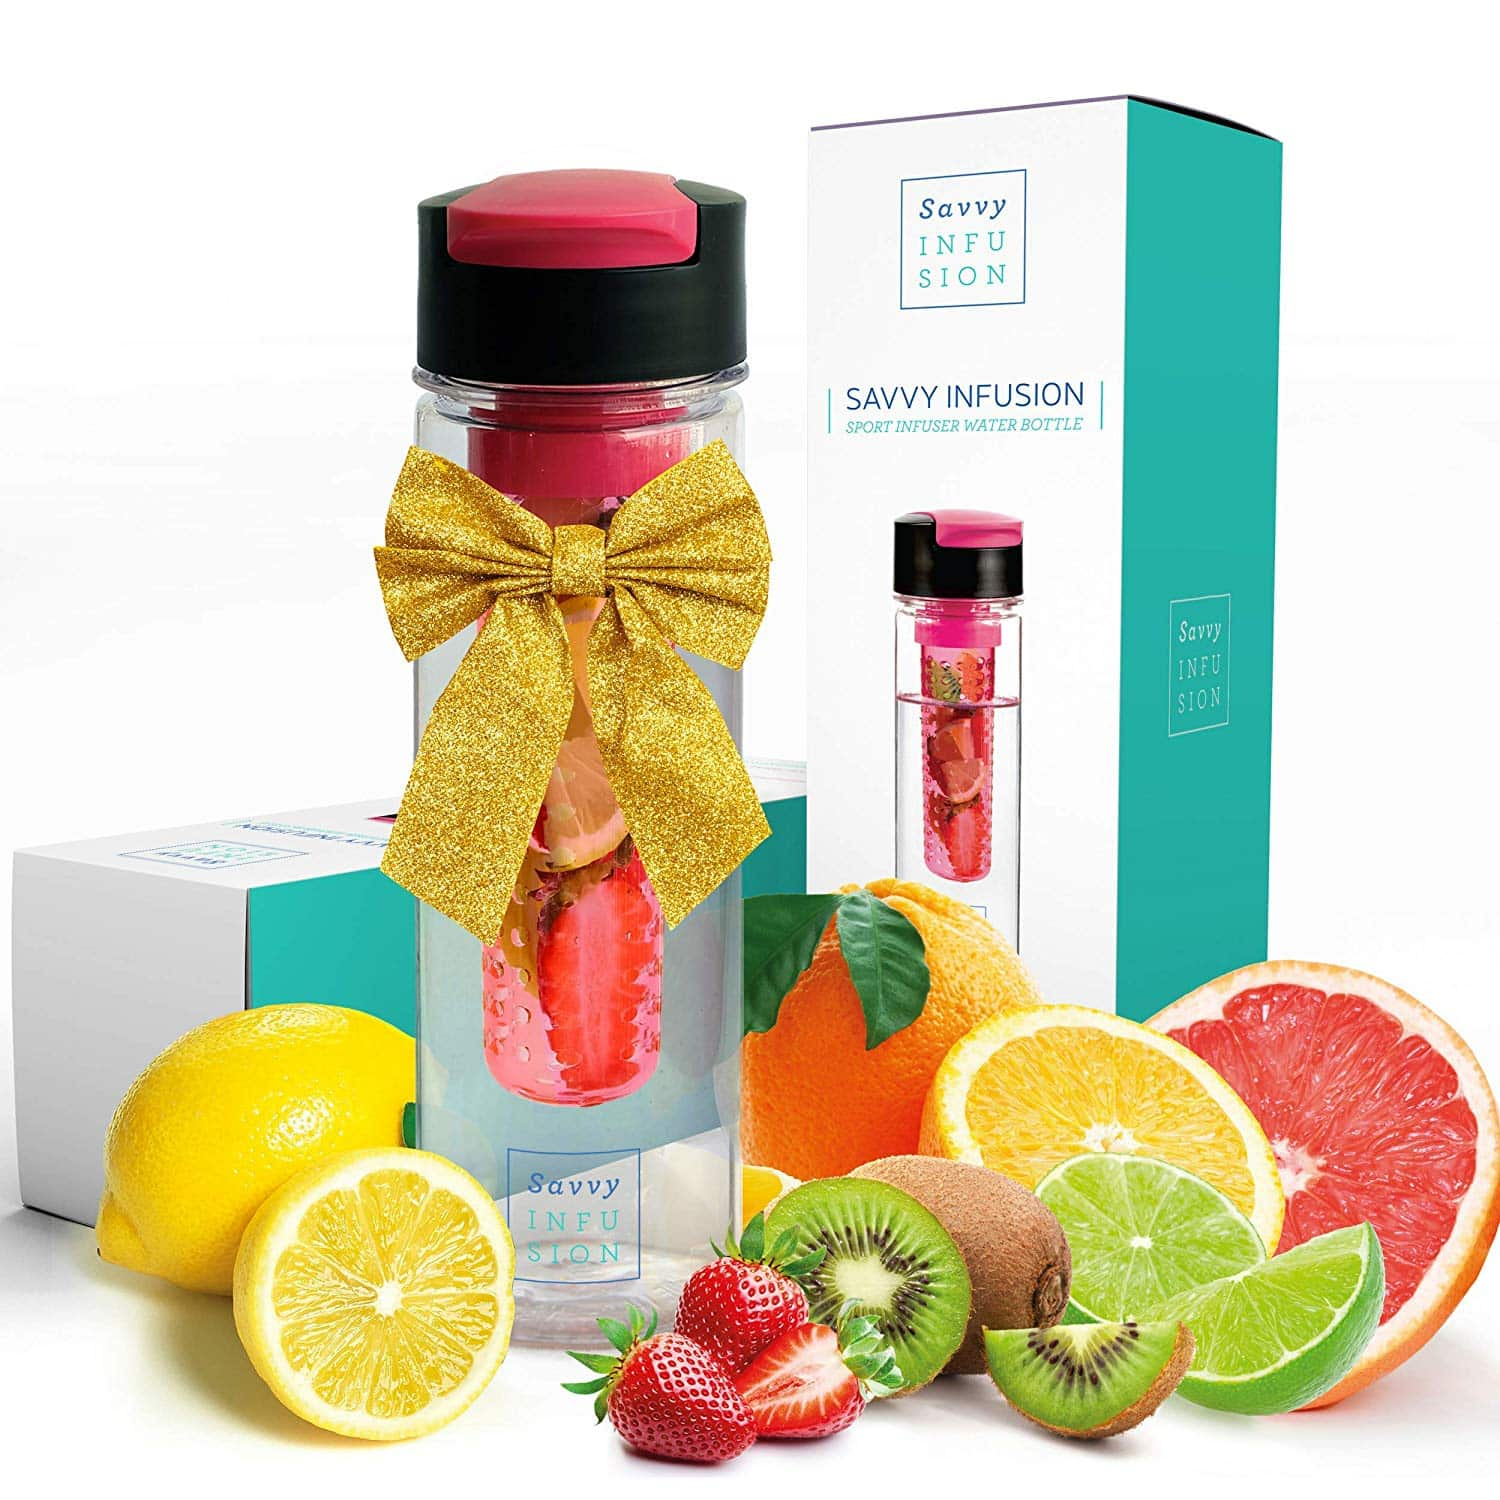 Savvy Infusion Flip Top Fruit Infuser Bottle